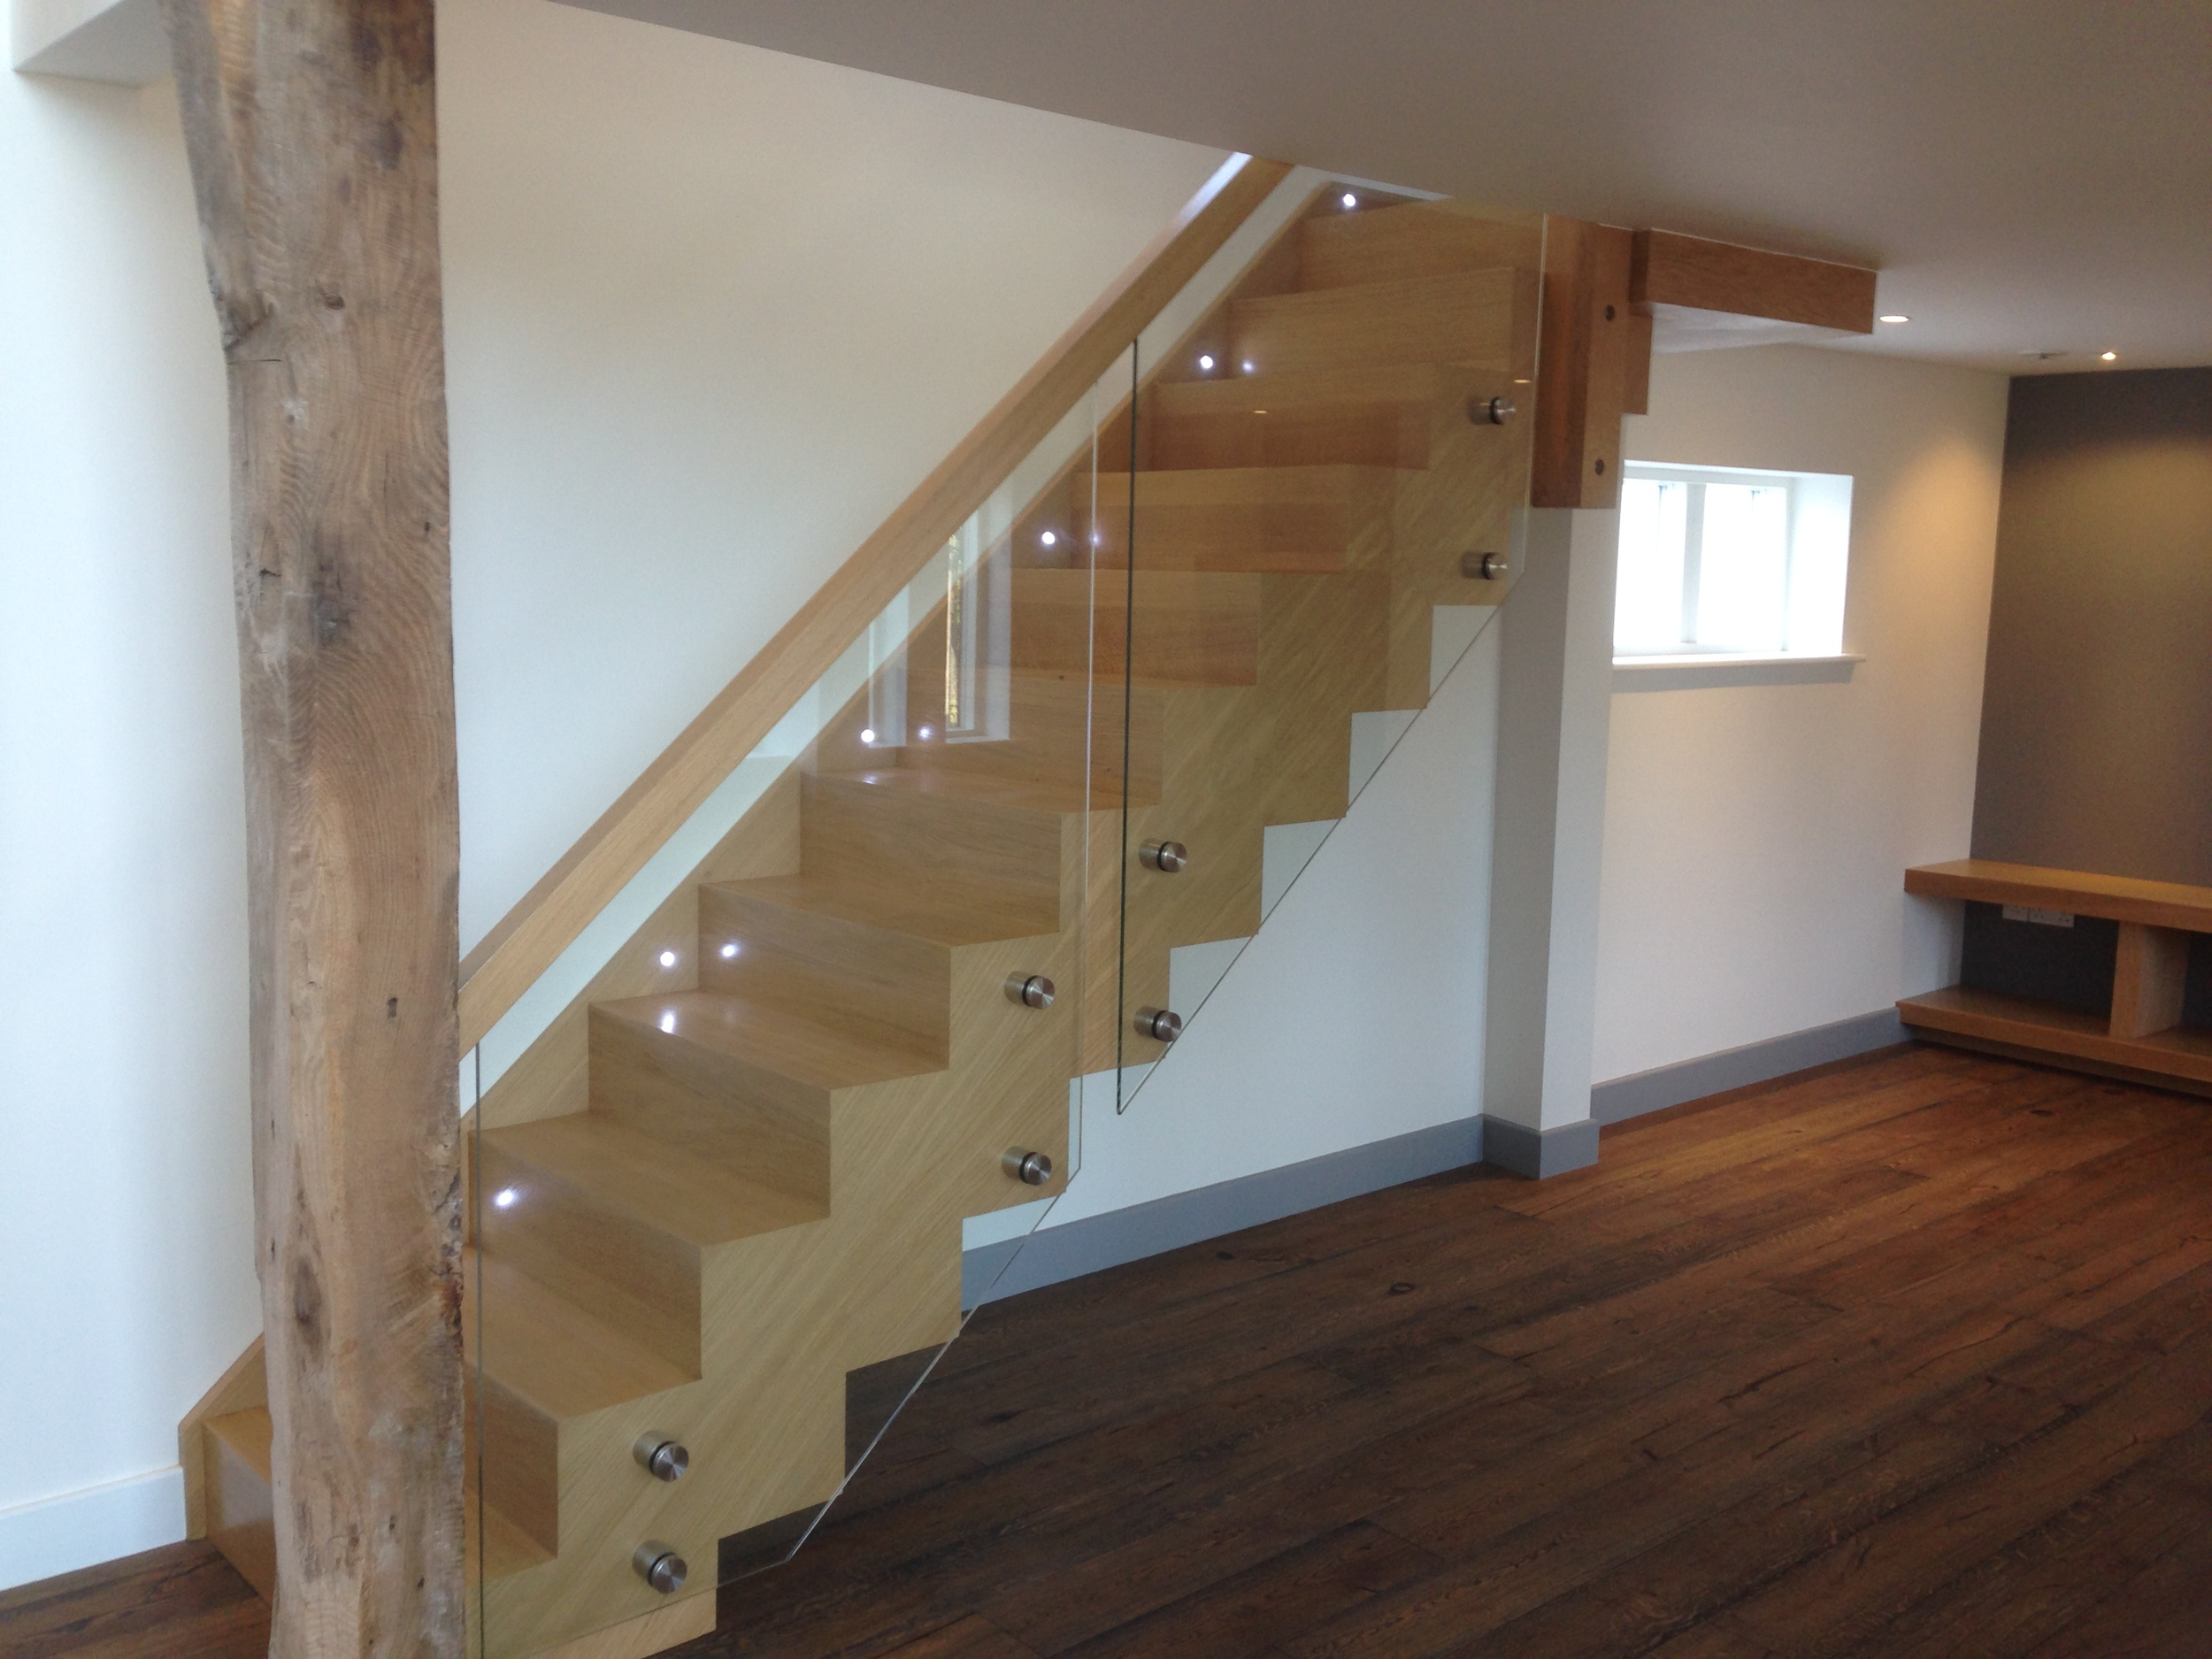 A sleek timber staircase with glazed balustrade cantilevers off the side wall, enhancing the open plan feel of the property. The Clients specified a sleek modern feel to the interior, although some key existing timbers were retained and exposed, retaining elements exploring the history of the building.  Bespoke Oak Staircase:  Weybread Woodcraft, Fressingfield